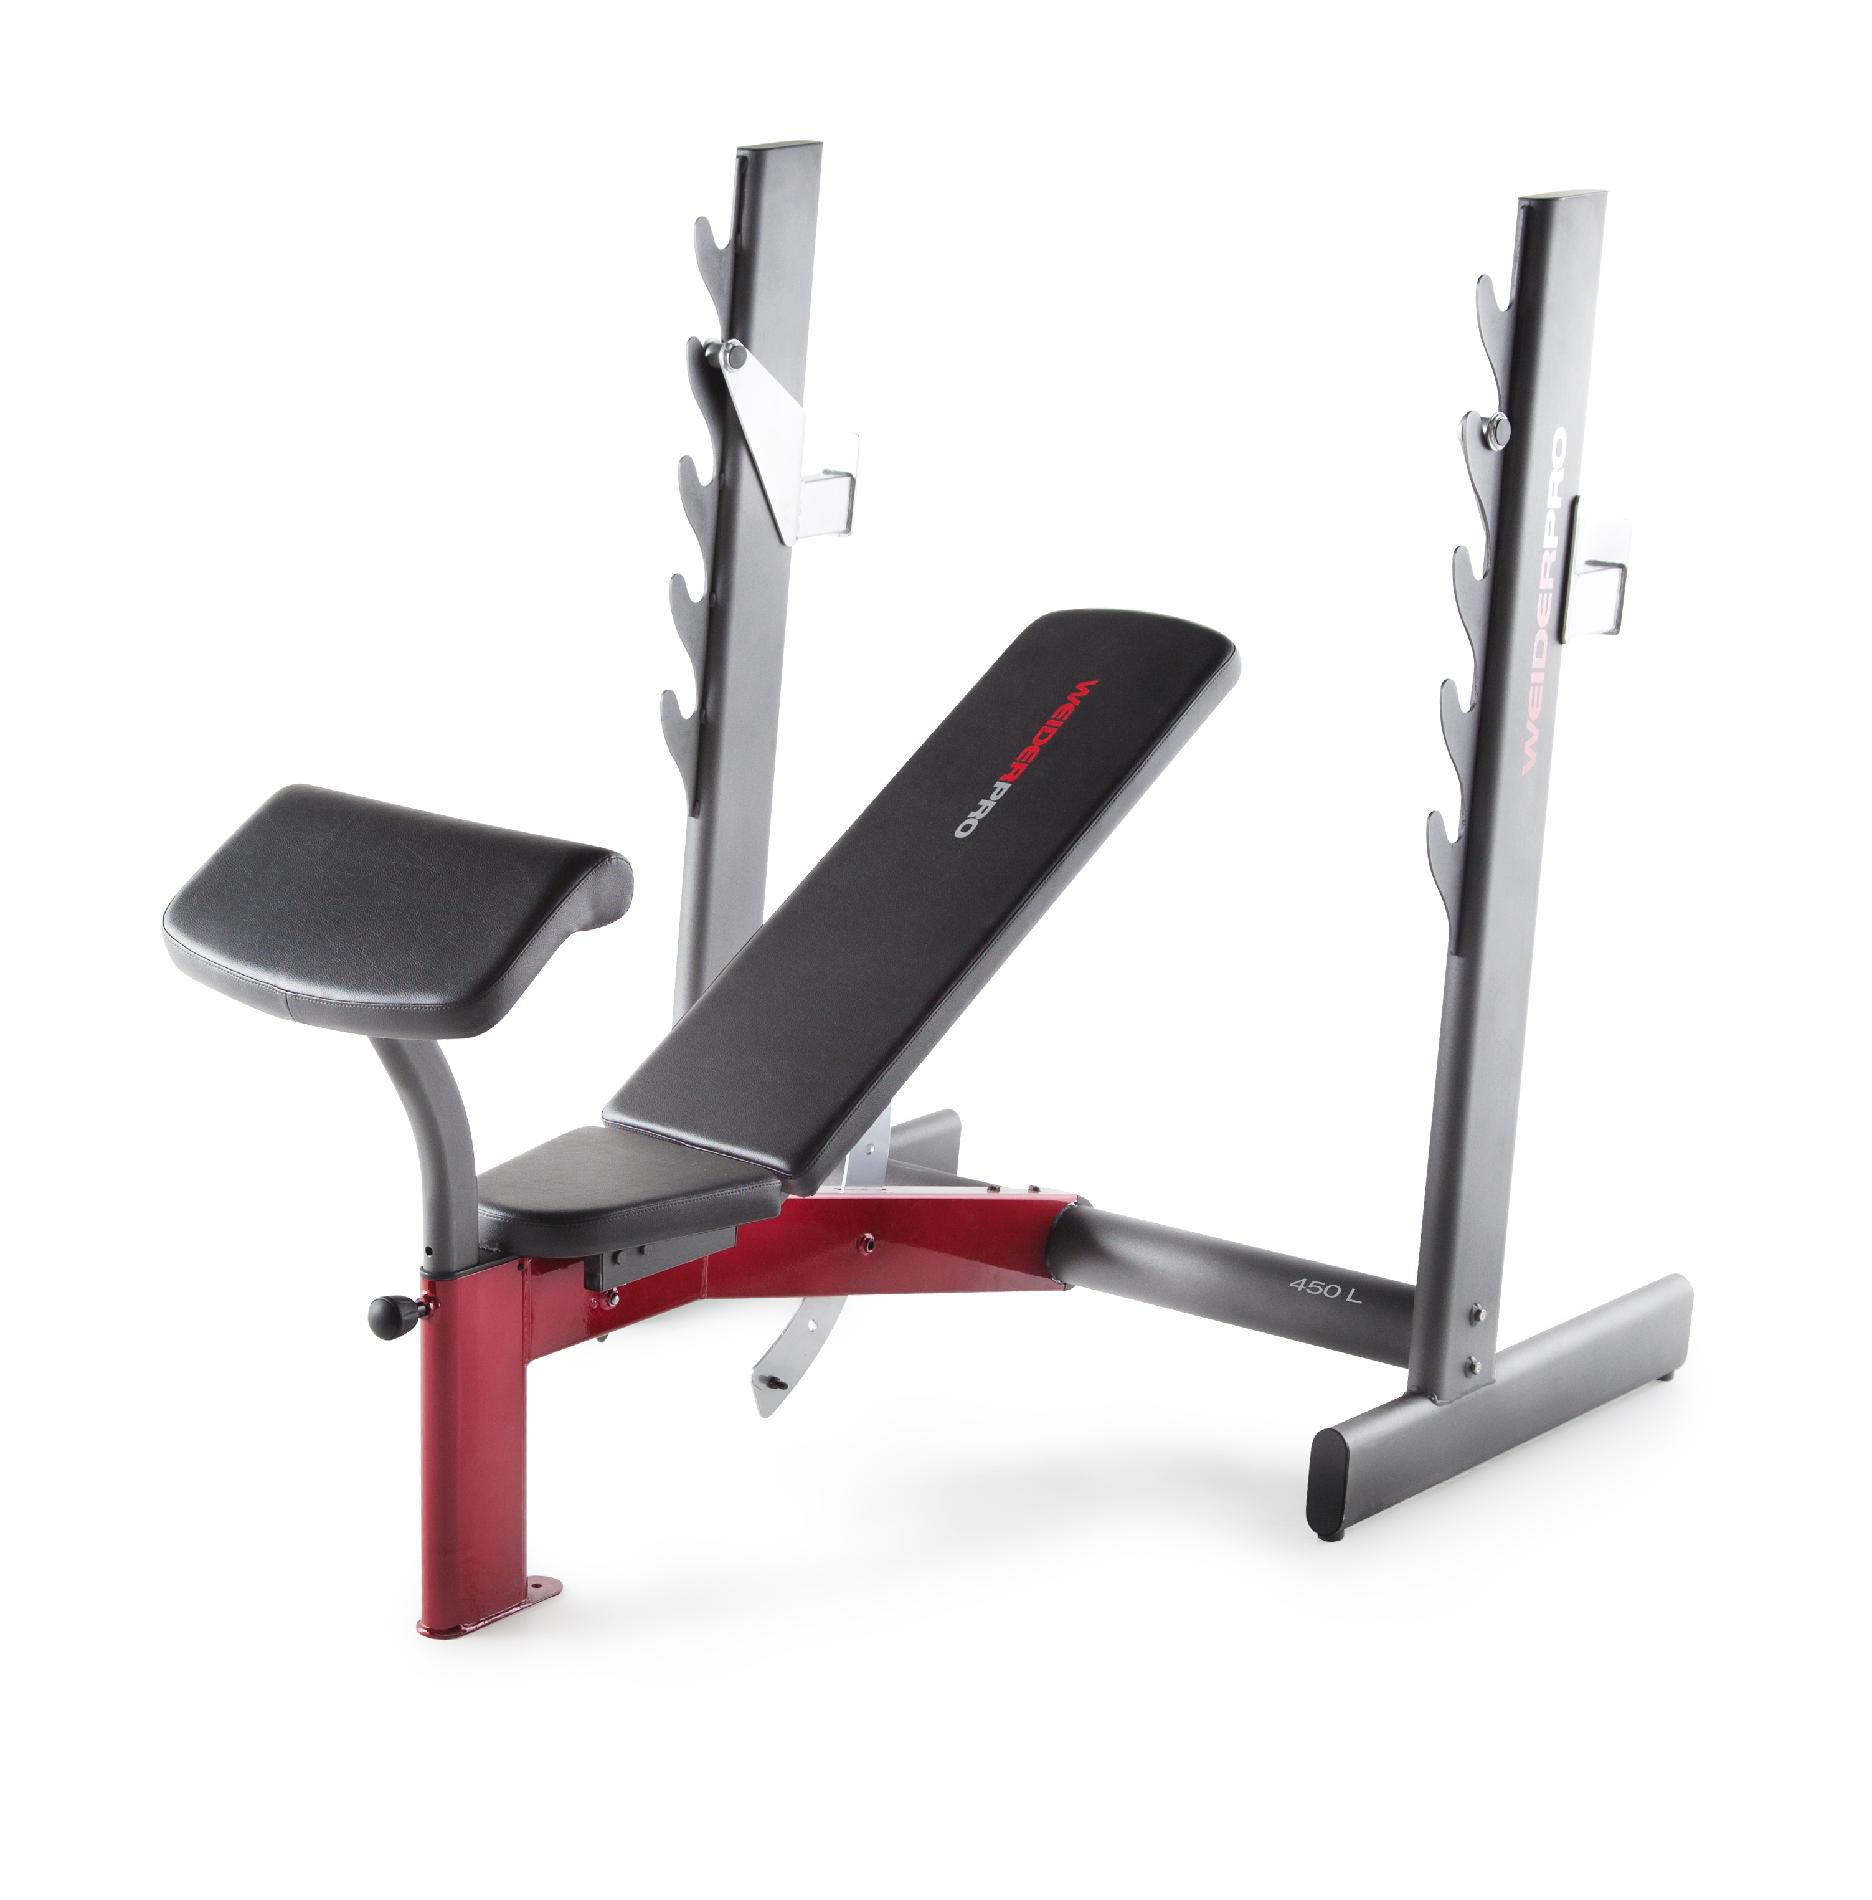 Weider - 15948 Pro 450 L Olympic-width Bench Sears Outlet